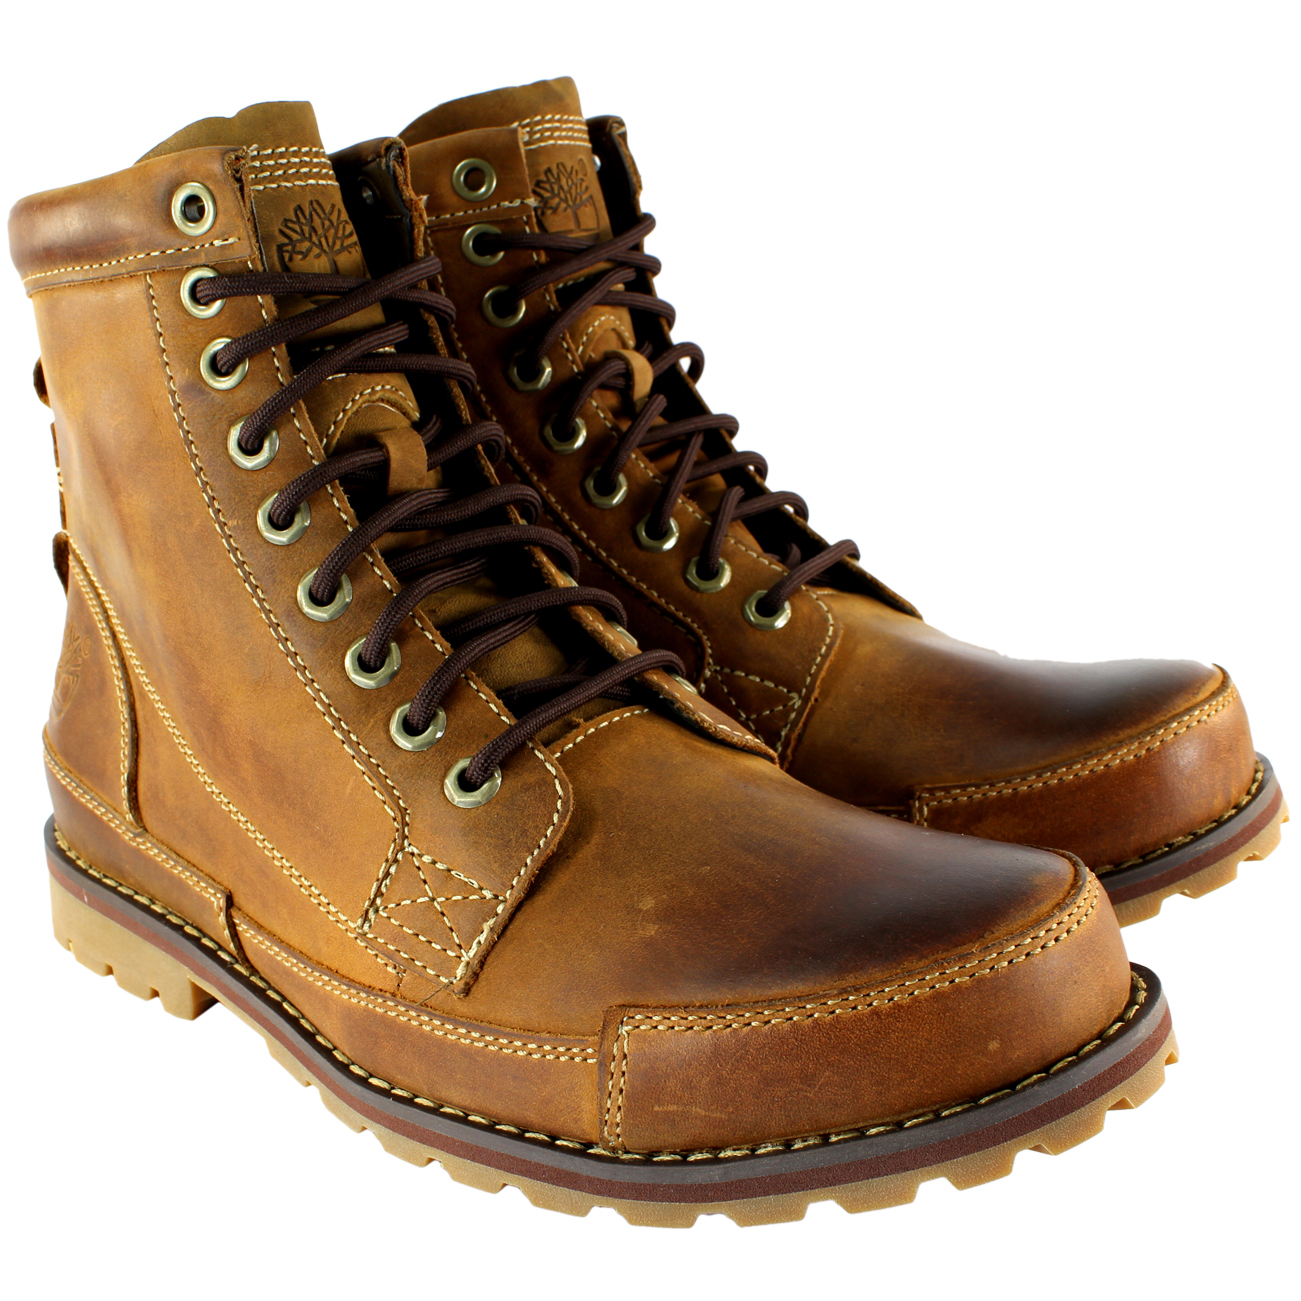 Timberland Earthkeepers Original Ankle Boots